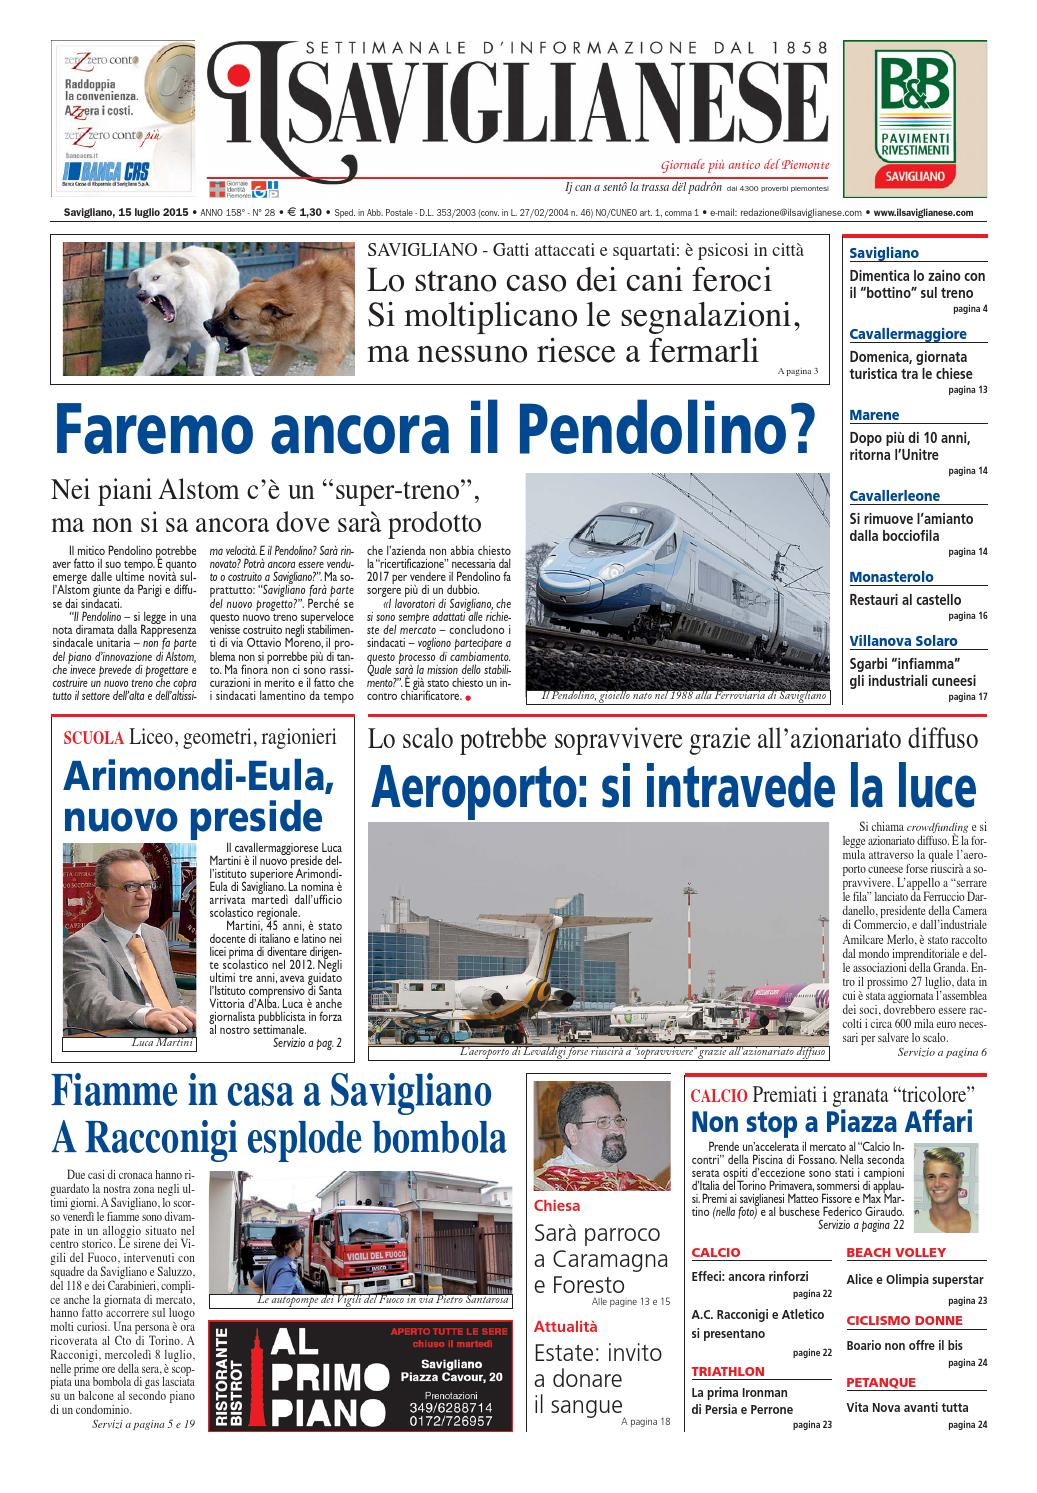 15 7 2015 by Valerio Maccagno - issuu 5acce4306ac2